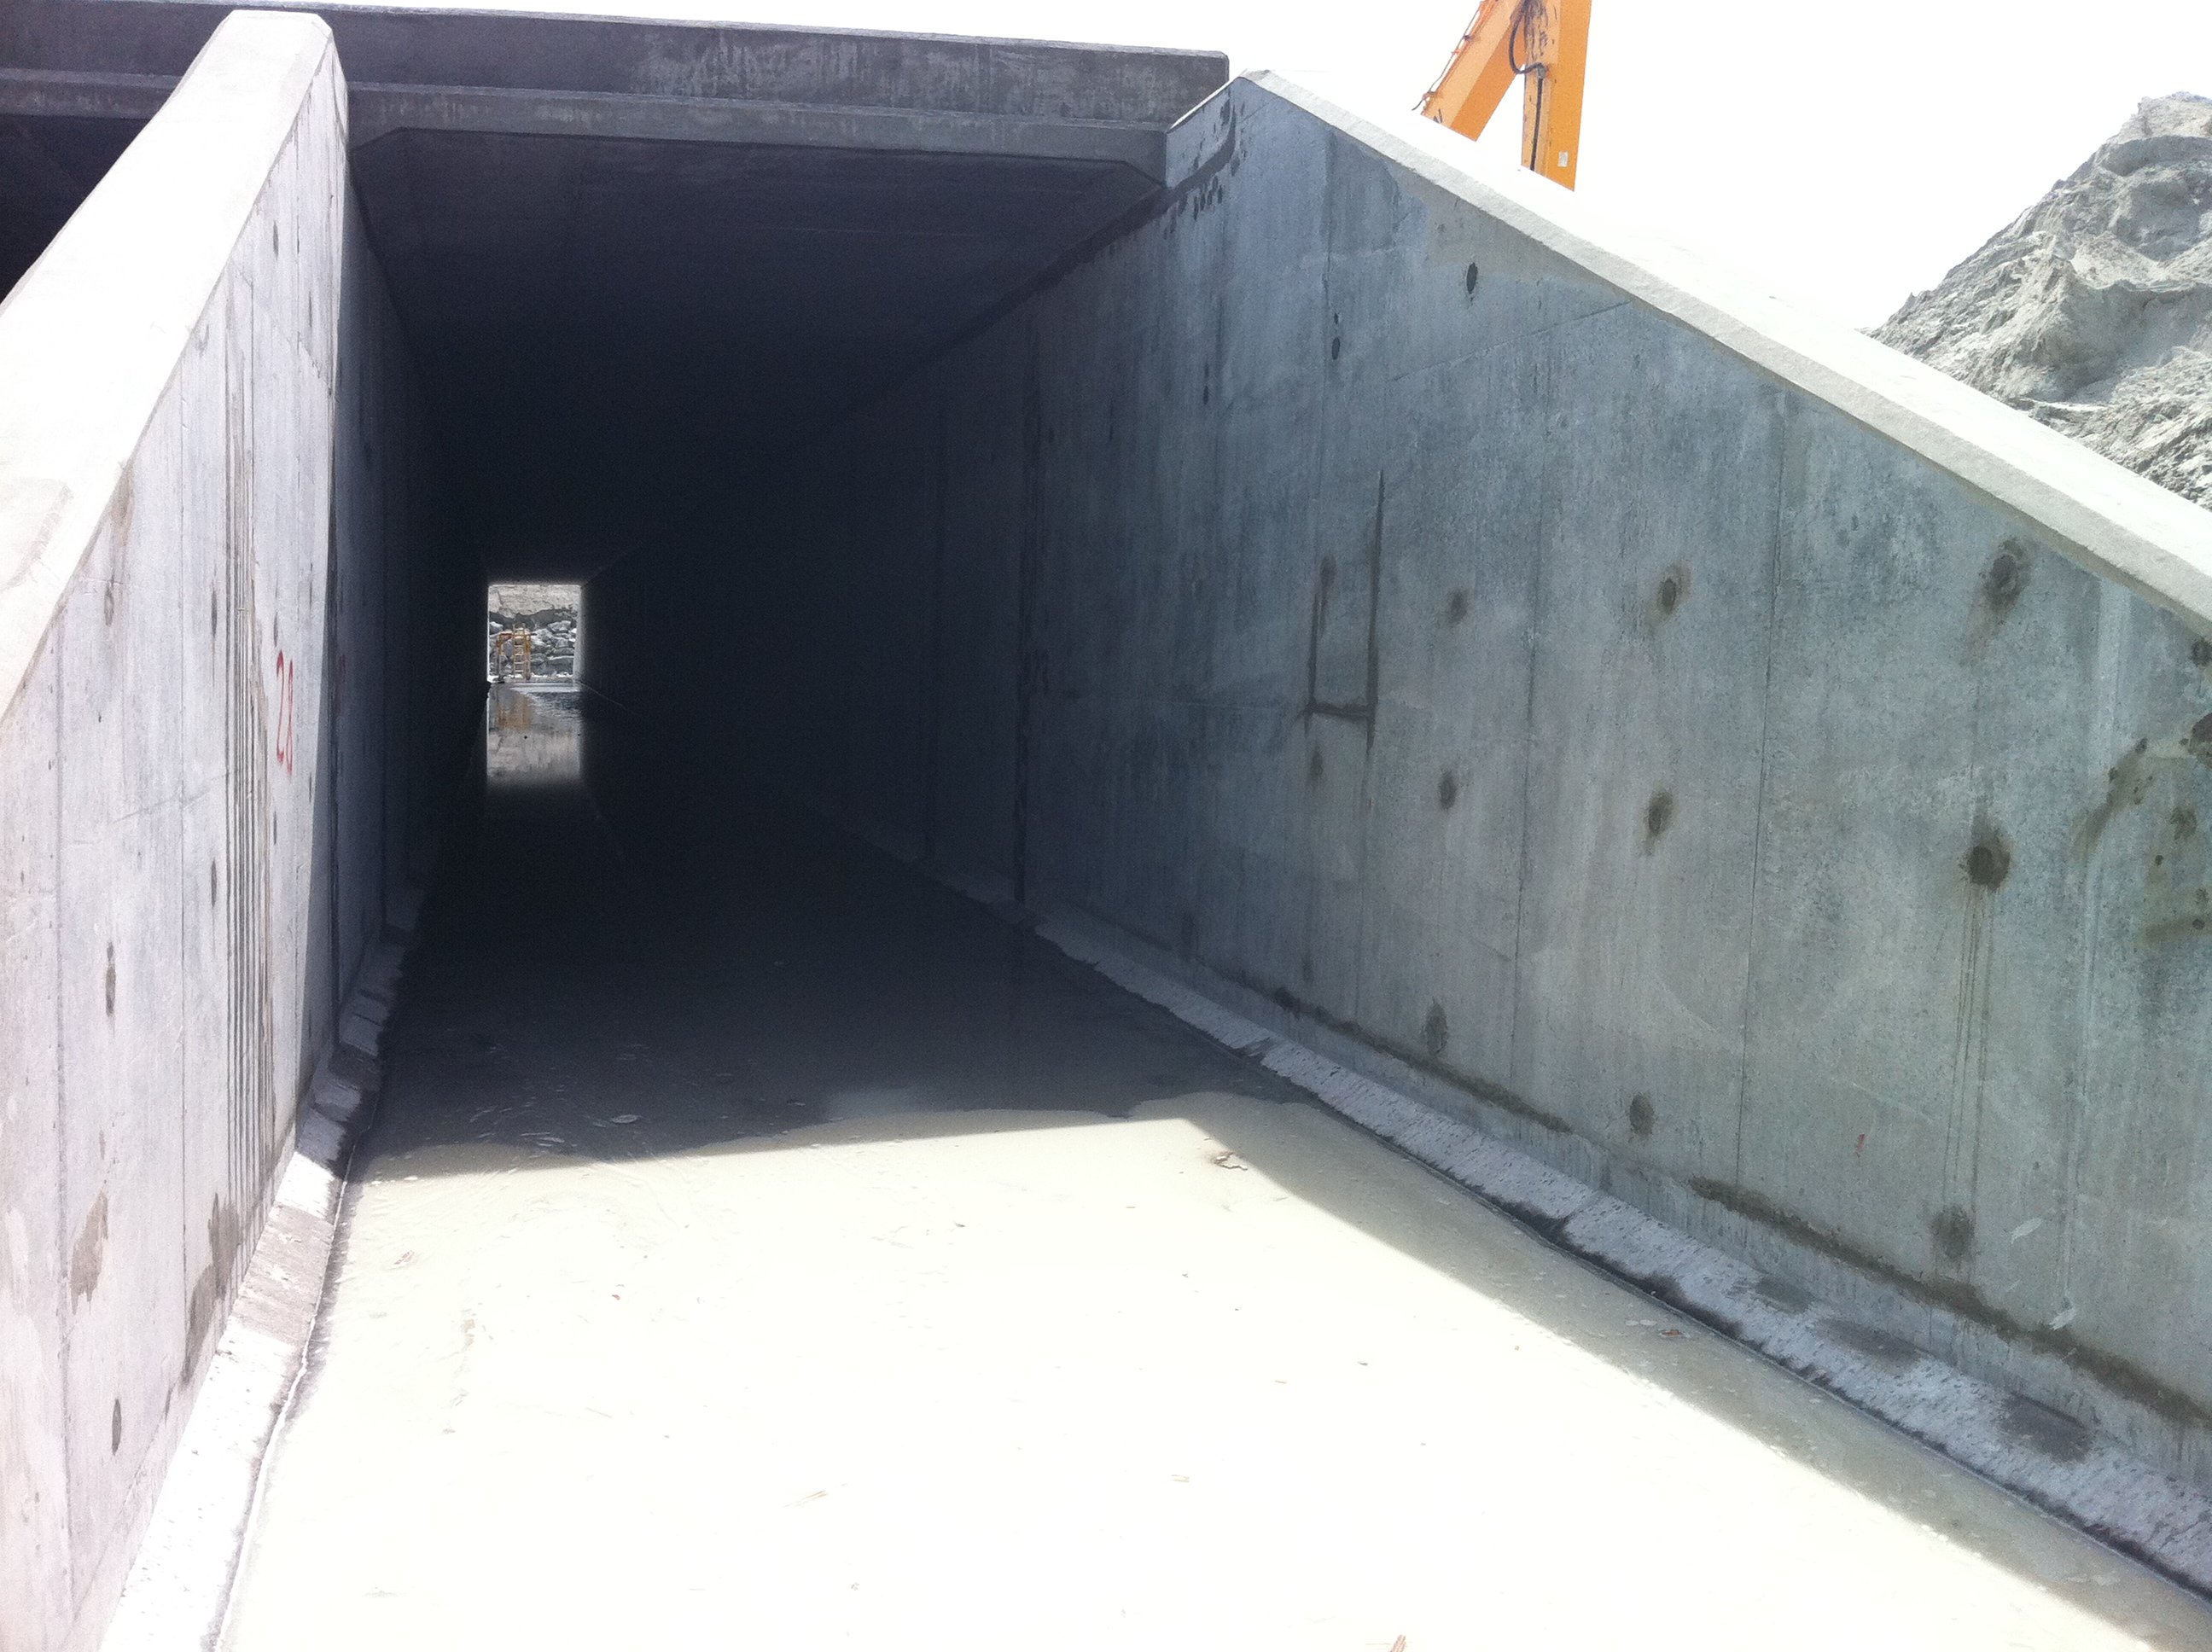 Right Culvert Entrance